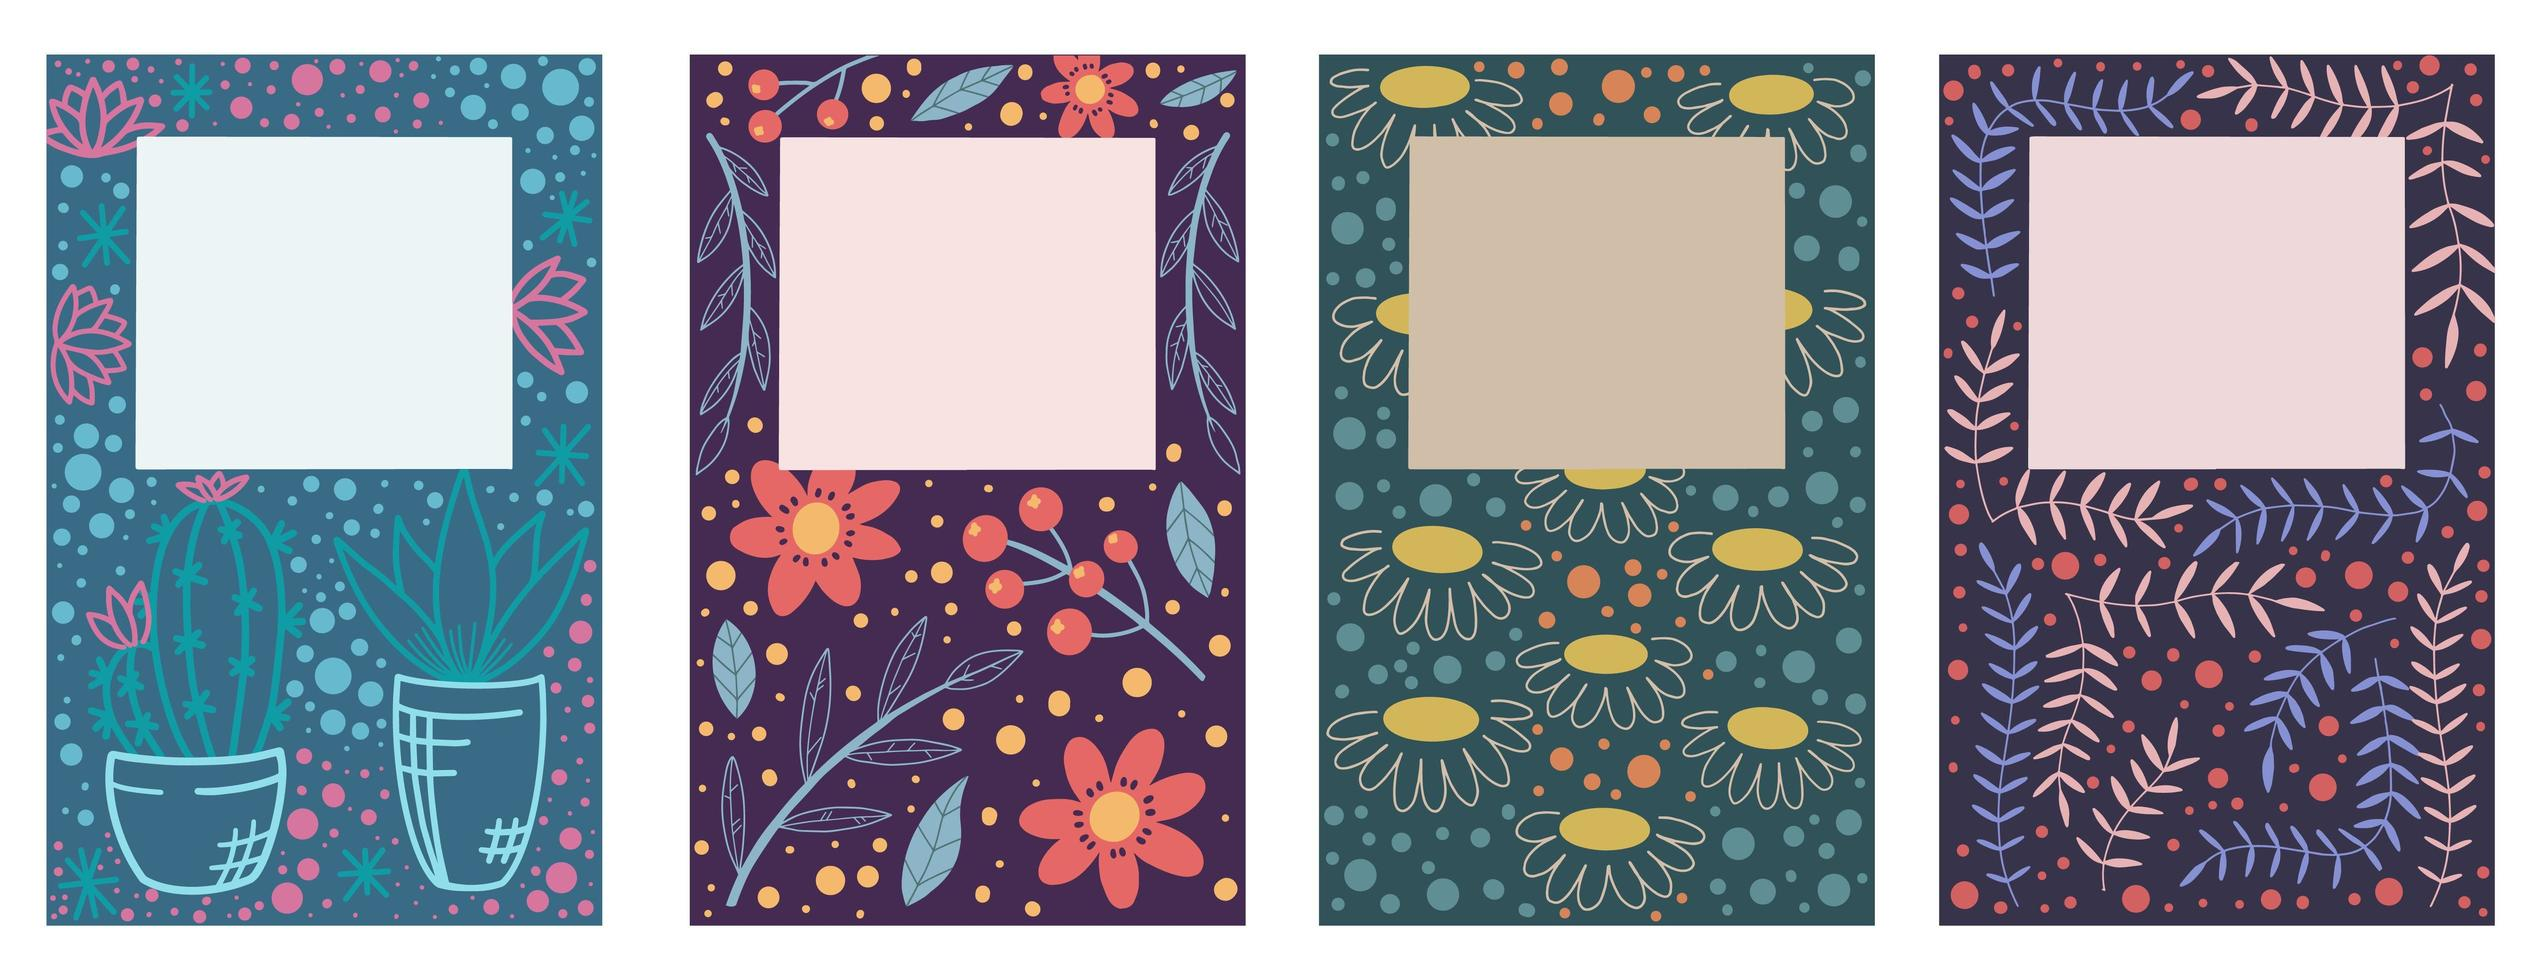 Cover Design with Floral Pattern Set vector